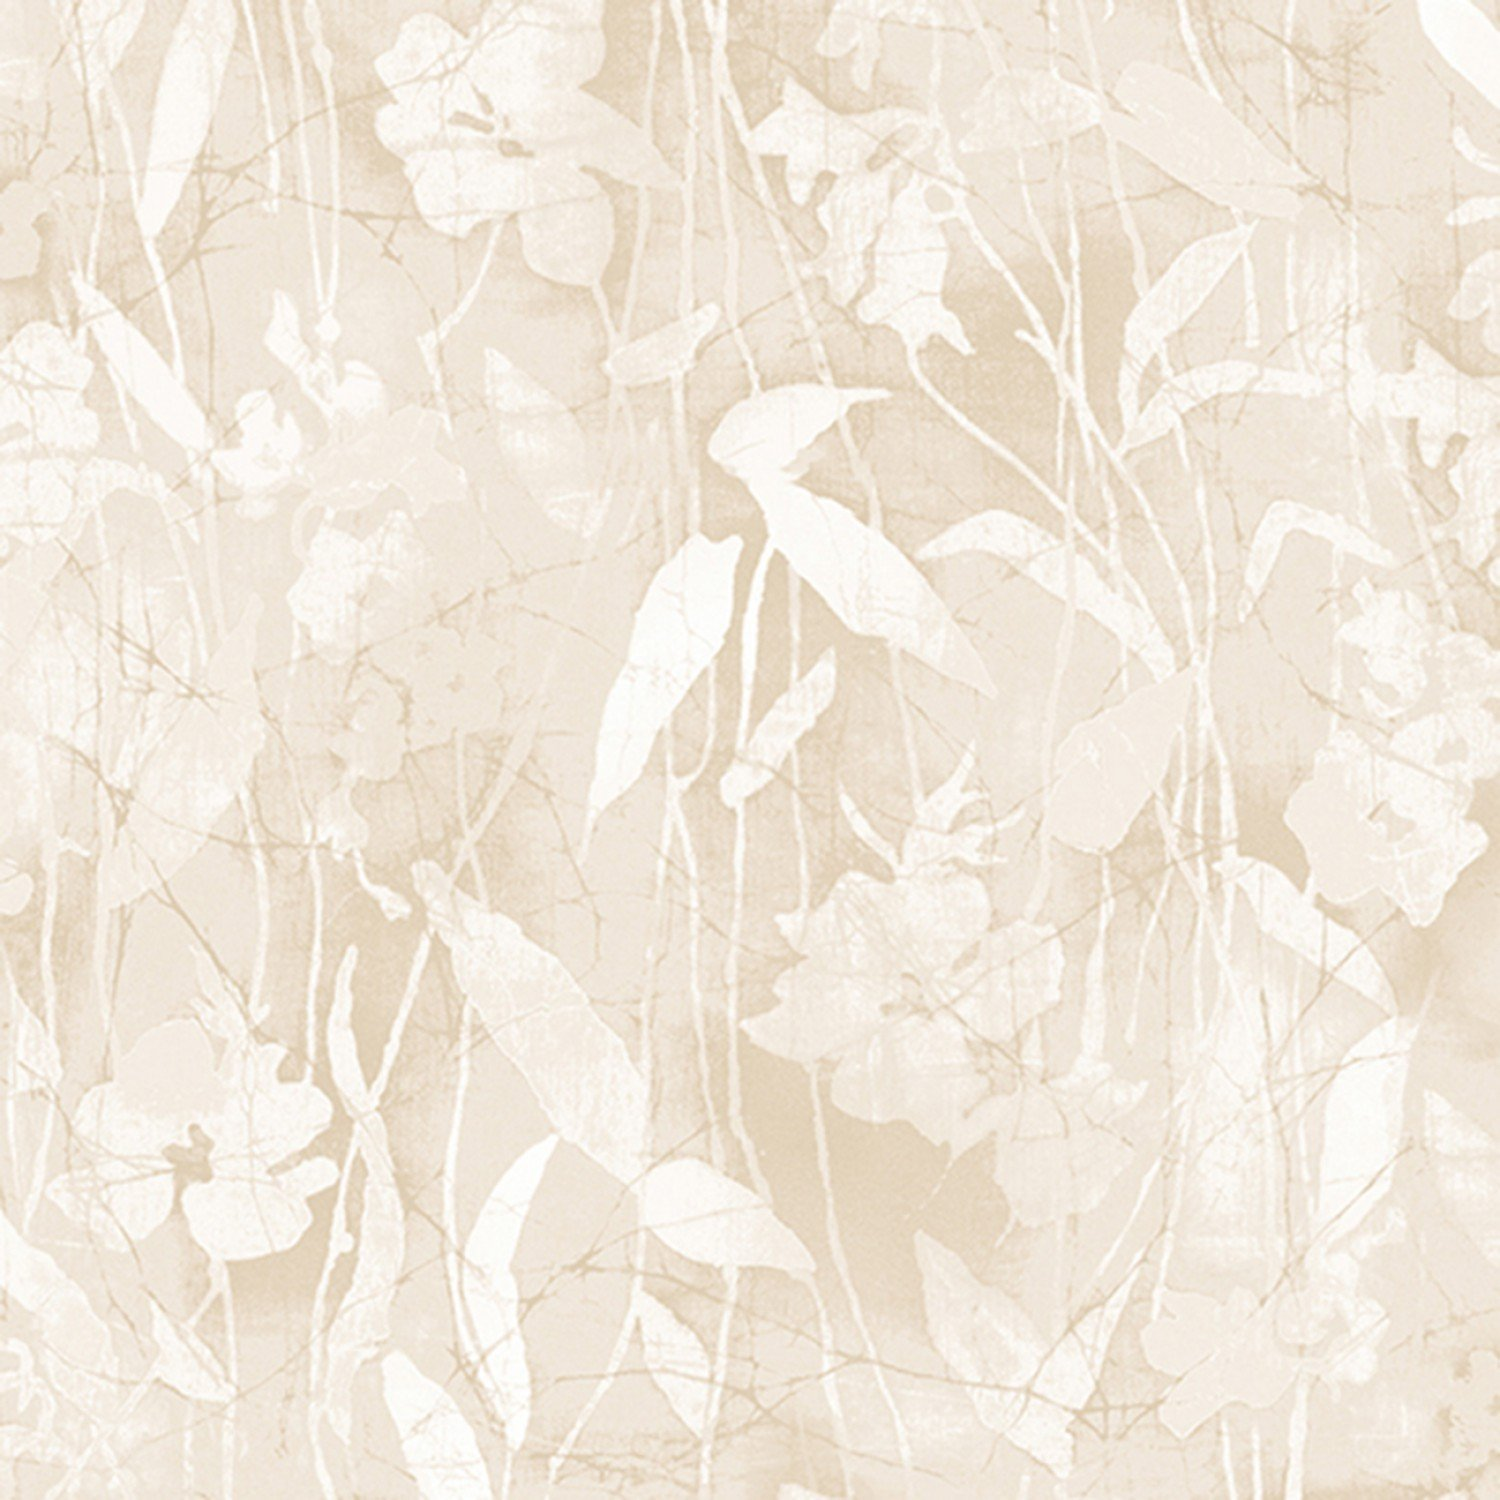 Maywood Studio Aged To Perfection Tender Vines Fabric